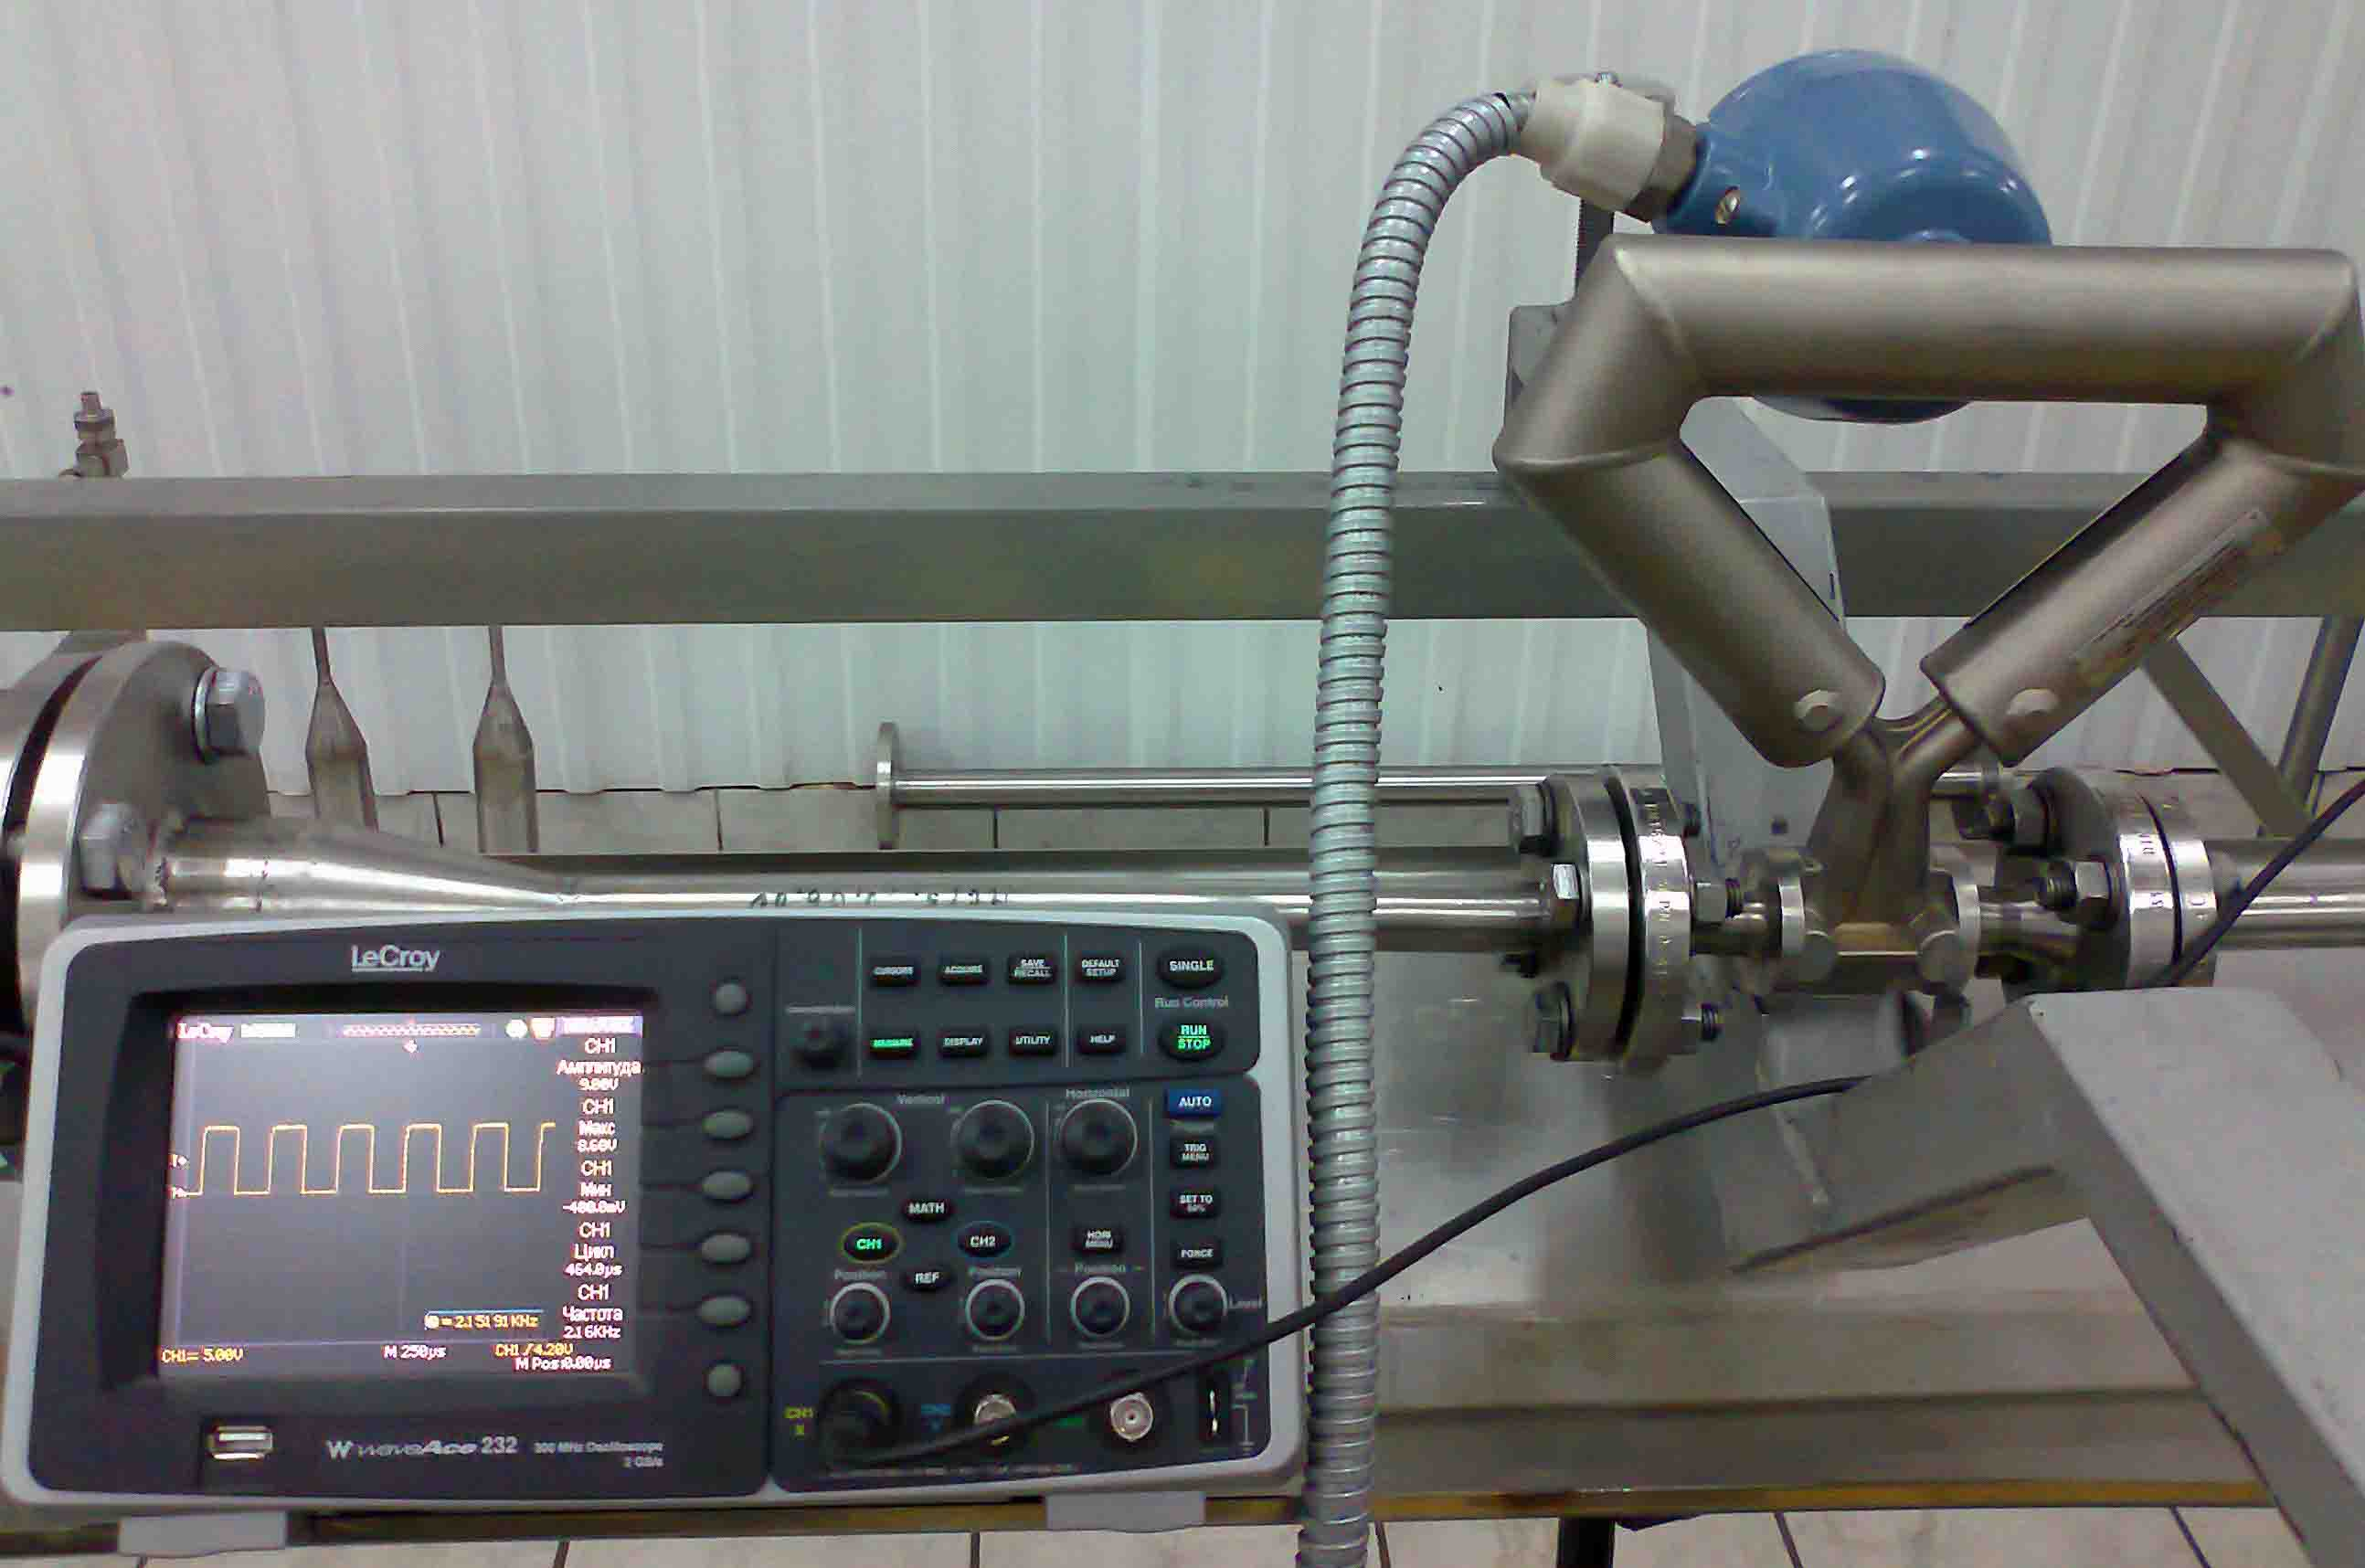 Flow measurement, flow measuring, flow metering, calibration test stand, volumetric flowmeter, mass flowmeter, ISO 4185, Promass X, Micro Motion CMFHC, Trio-Mass, Optimass 2000, Rotamass, reference meter, thermal mass, multiphase, coriolis, mass electromagnetic variable area ultrasonic vortex flowmeter, verification calibration test testing flowmeter, flowmeter calibration standards, weighing method, measurement liquid flow, liquid flow measurement, meter calibration, Komissarov Ltd, Metrology Systems Engineering Company,流量測量,流量計校驗,校驗流量計,測試流量計,質量流量,體積流量,流量测量,流量计校验,校验流量计,测试流量计,流量测量,质量流量,体積流量, 流量計標定,  手段流量计的校准,  设备流量计标定, 流量計のキャリブレーション